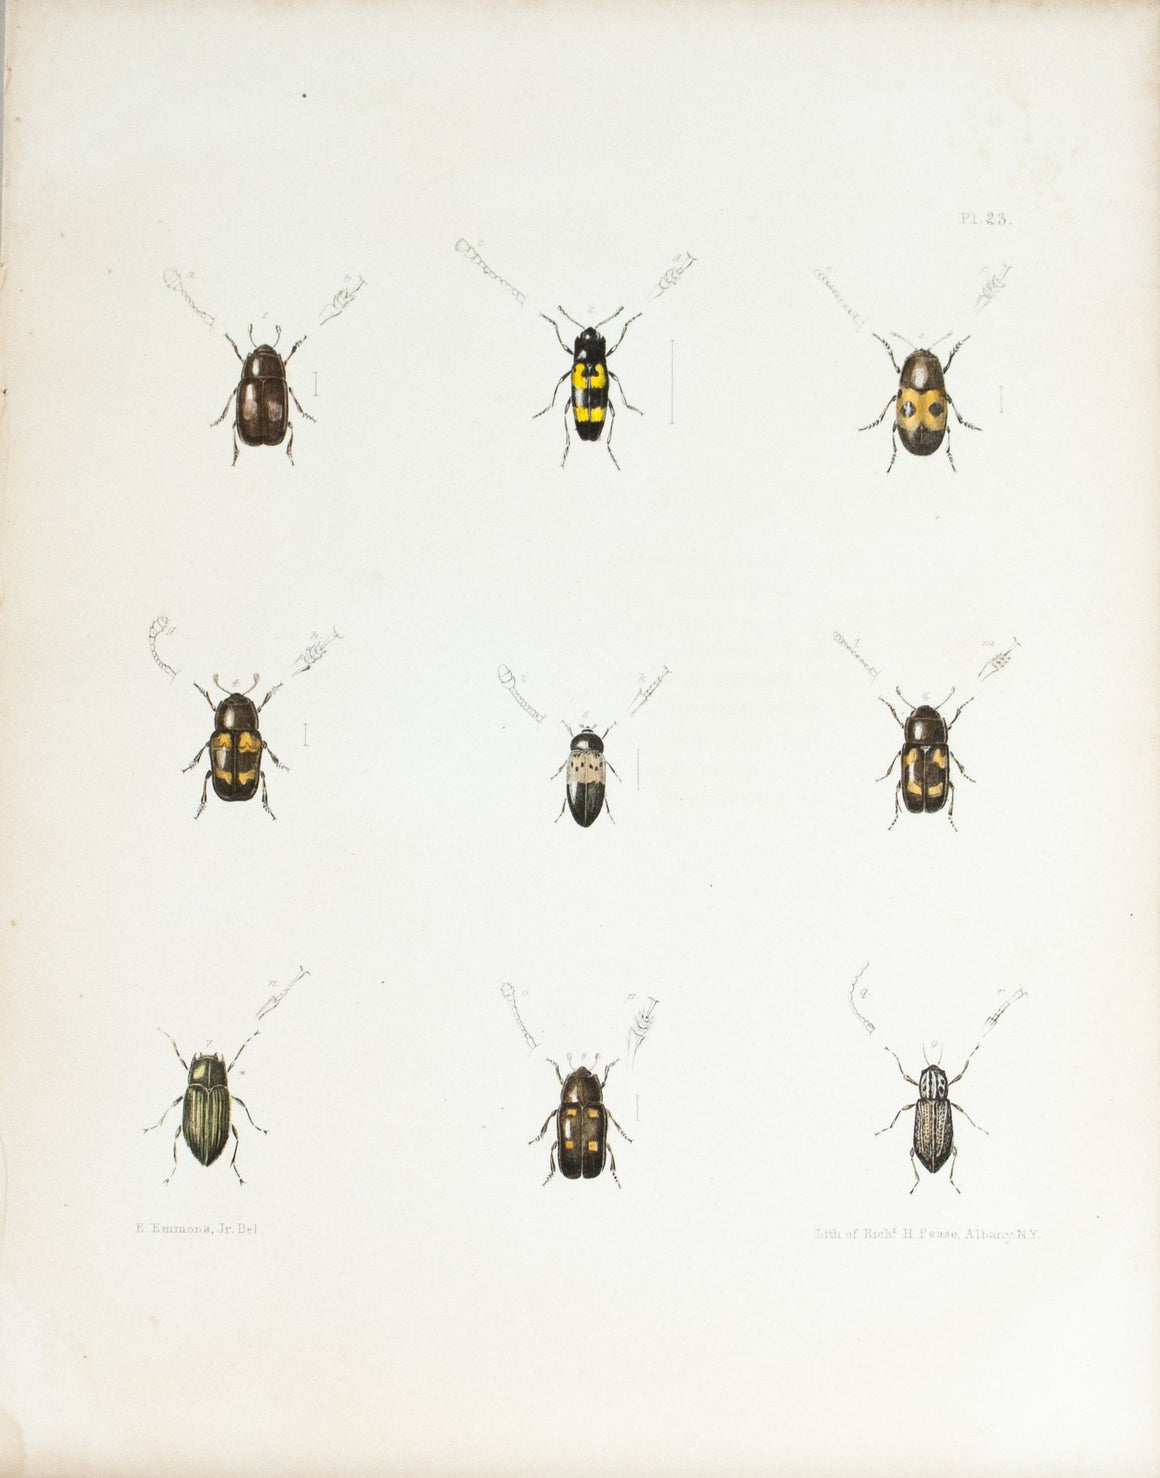 1854 Plate 23 - Bark and Ambrosia Beetles - Emmons